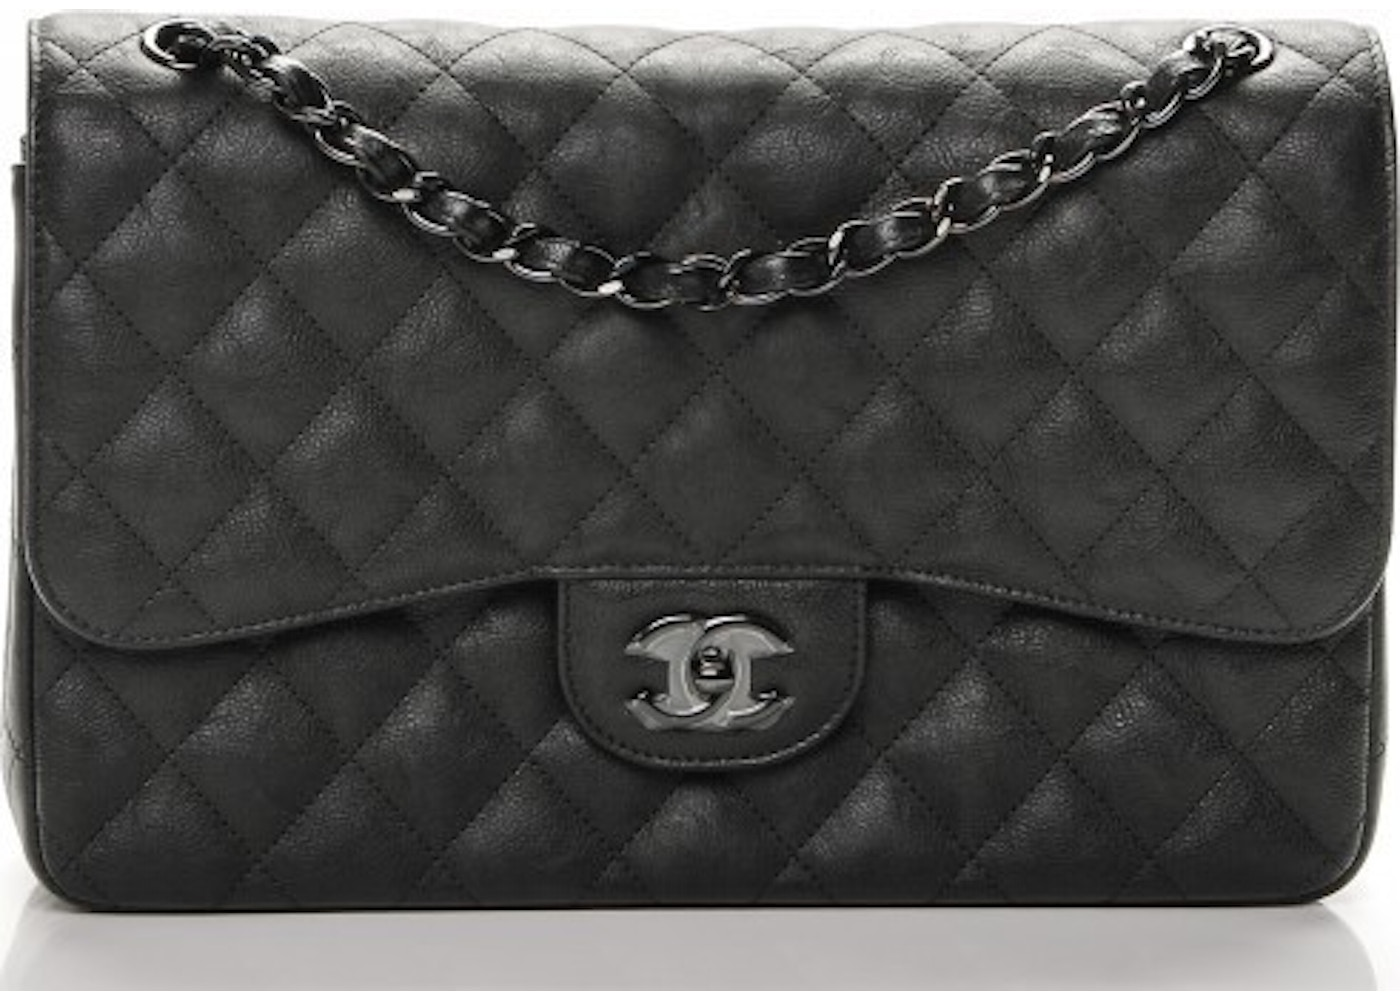 6c45bc6772ff Chanel Double Flap Classic Flap So Black Quilted Crumple Jumbo Black. So  Black Quilted Crumple Jumbo Black